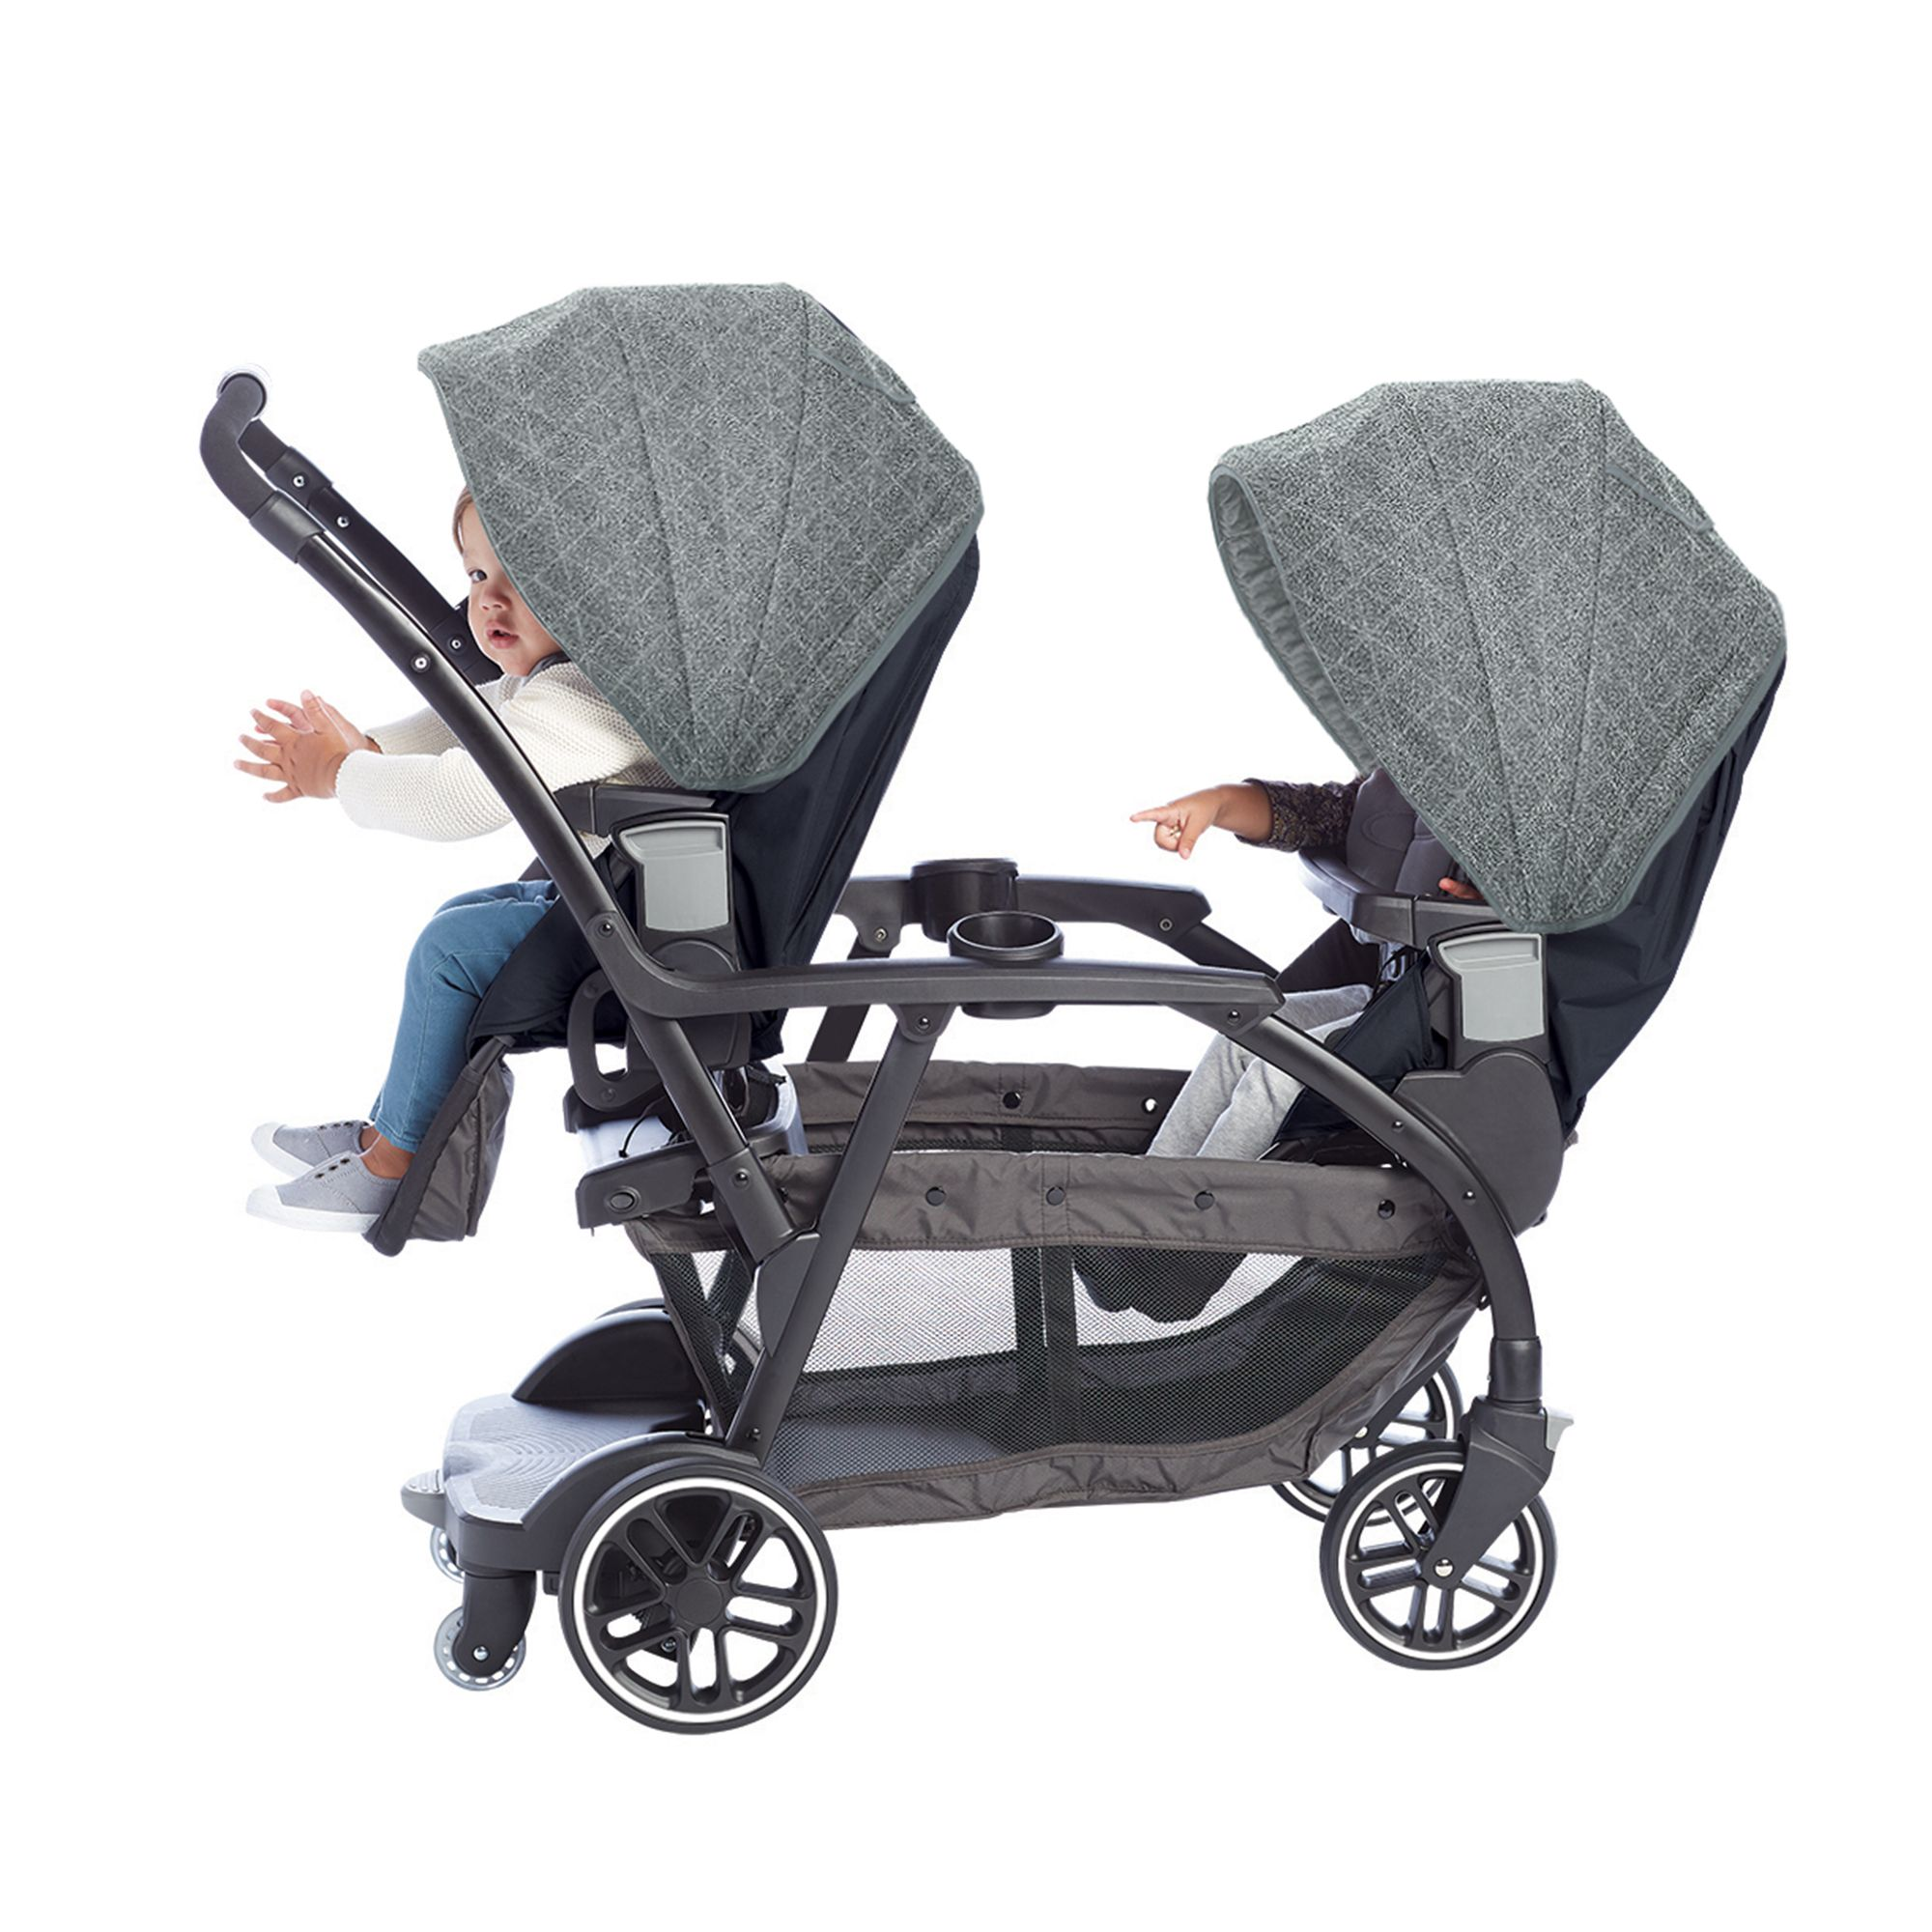 13+ Double stroller graco modes duo information